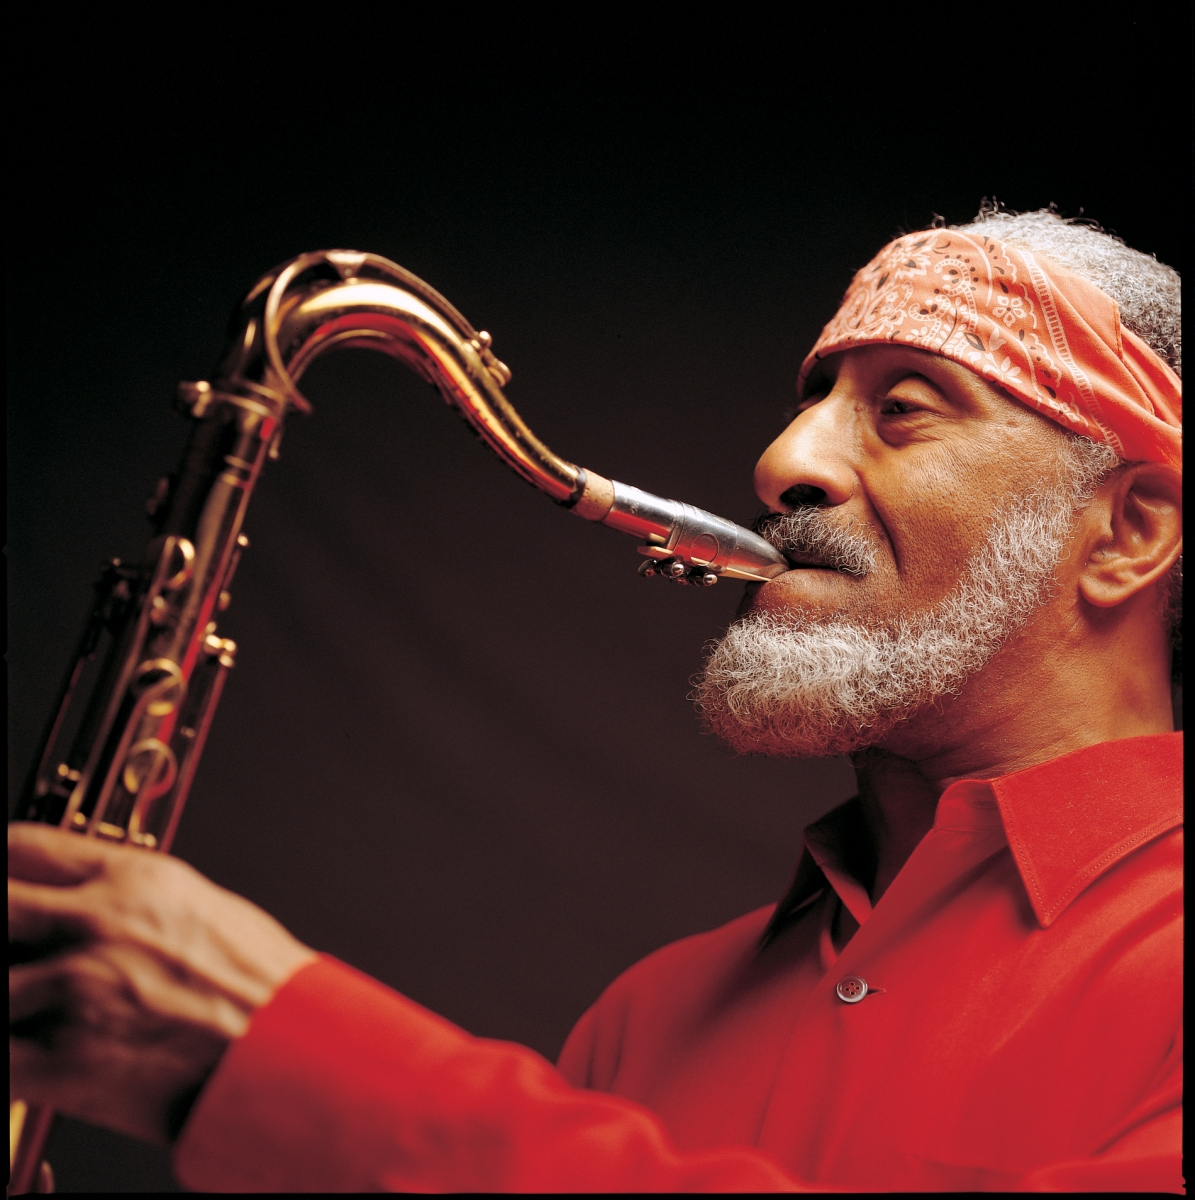 Sonny Rollins pwiddle-loo-pwiddle-loo-baap